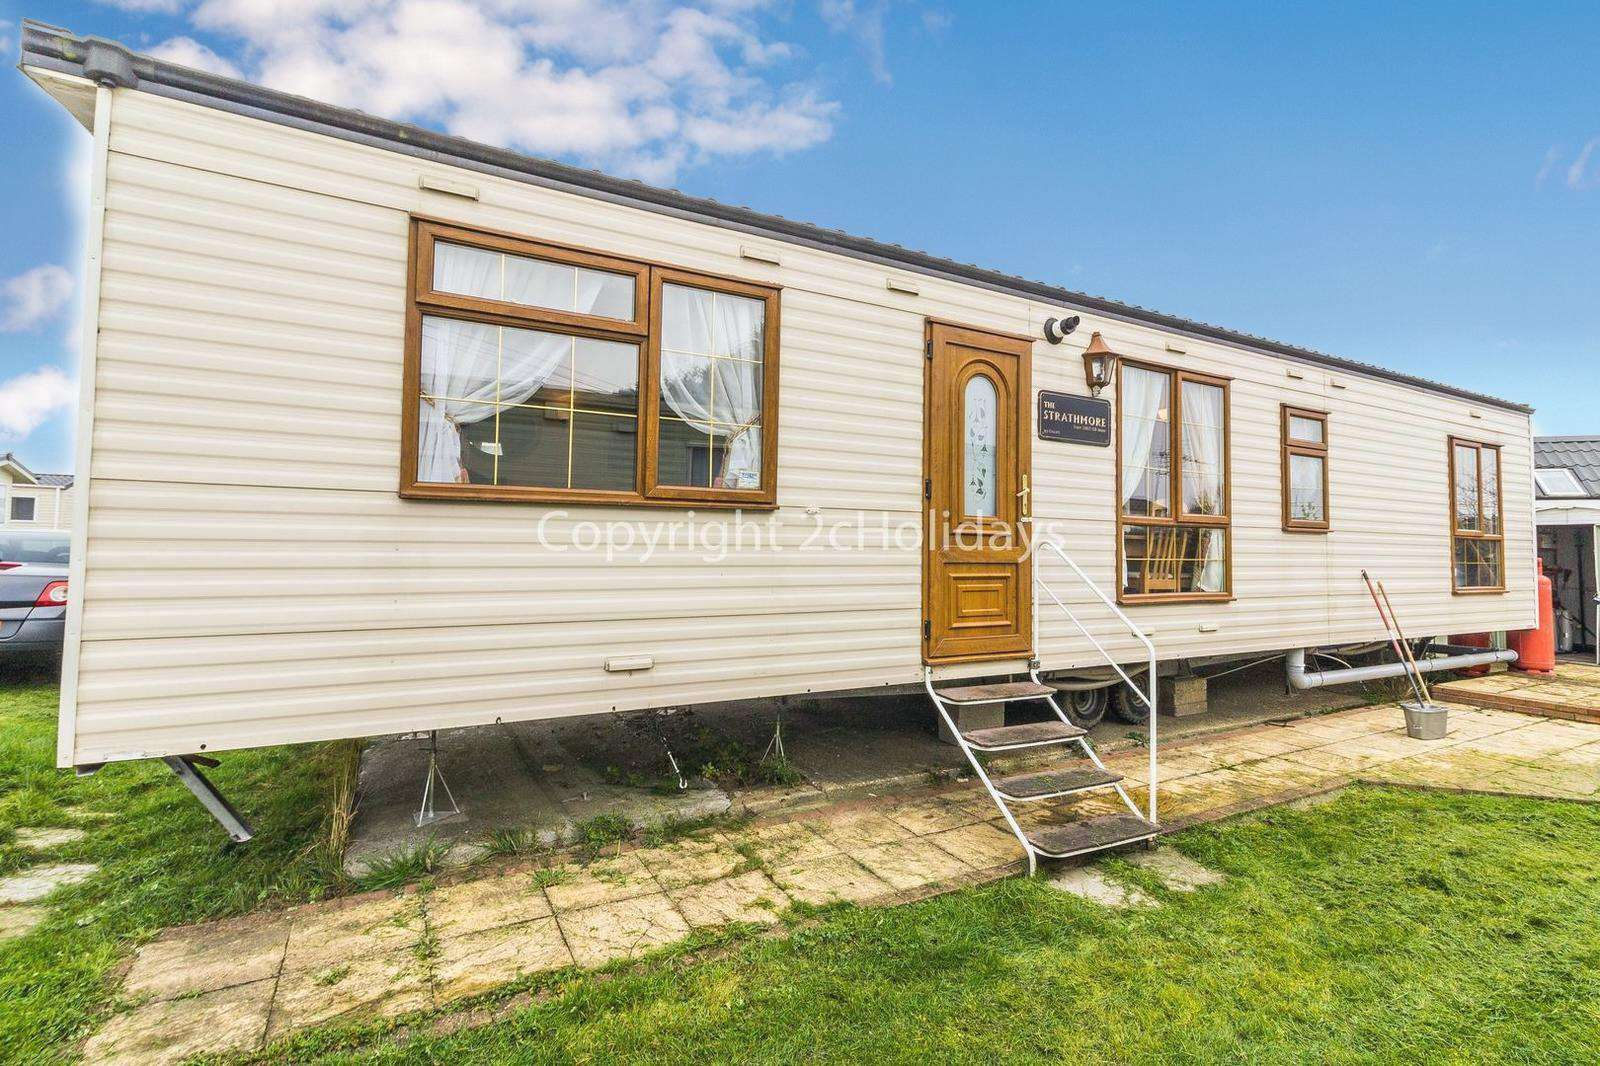 2 bed accommodation at Steeple Bay in Essex